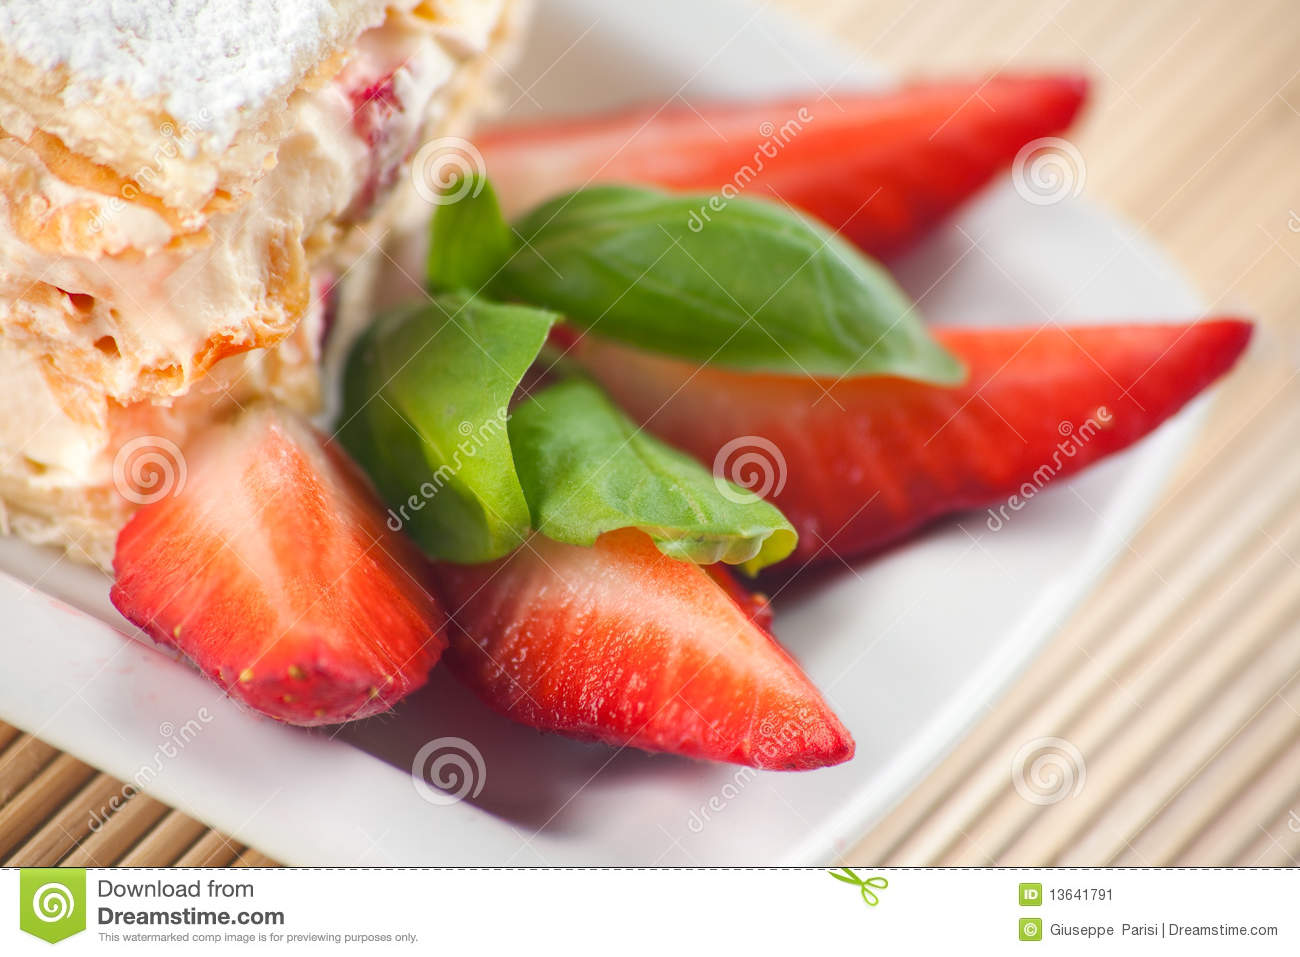 Strawberry Millefeuille Stock Image - Image: 13641791